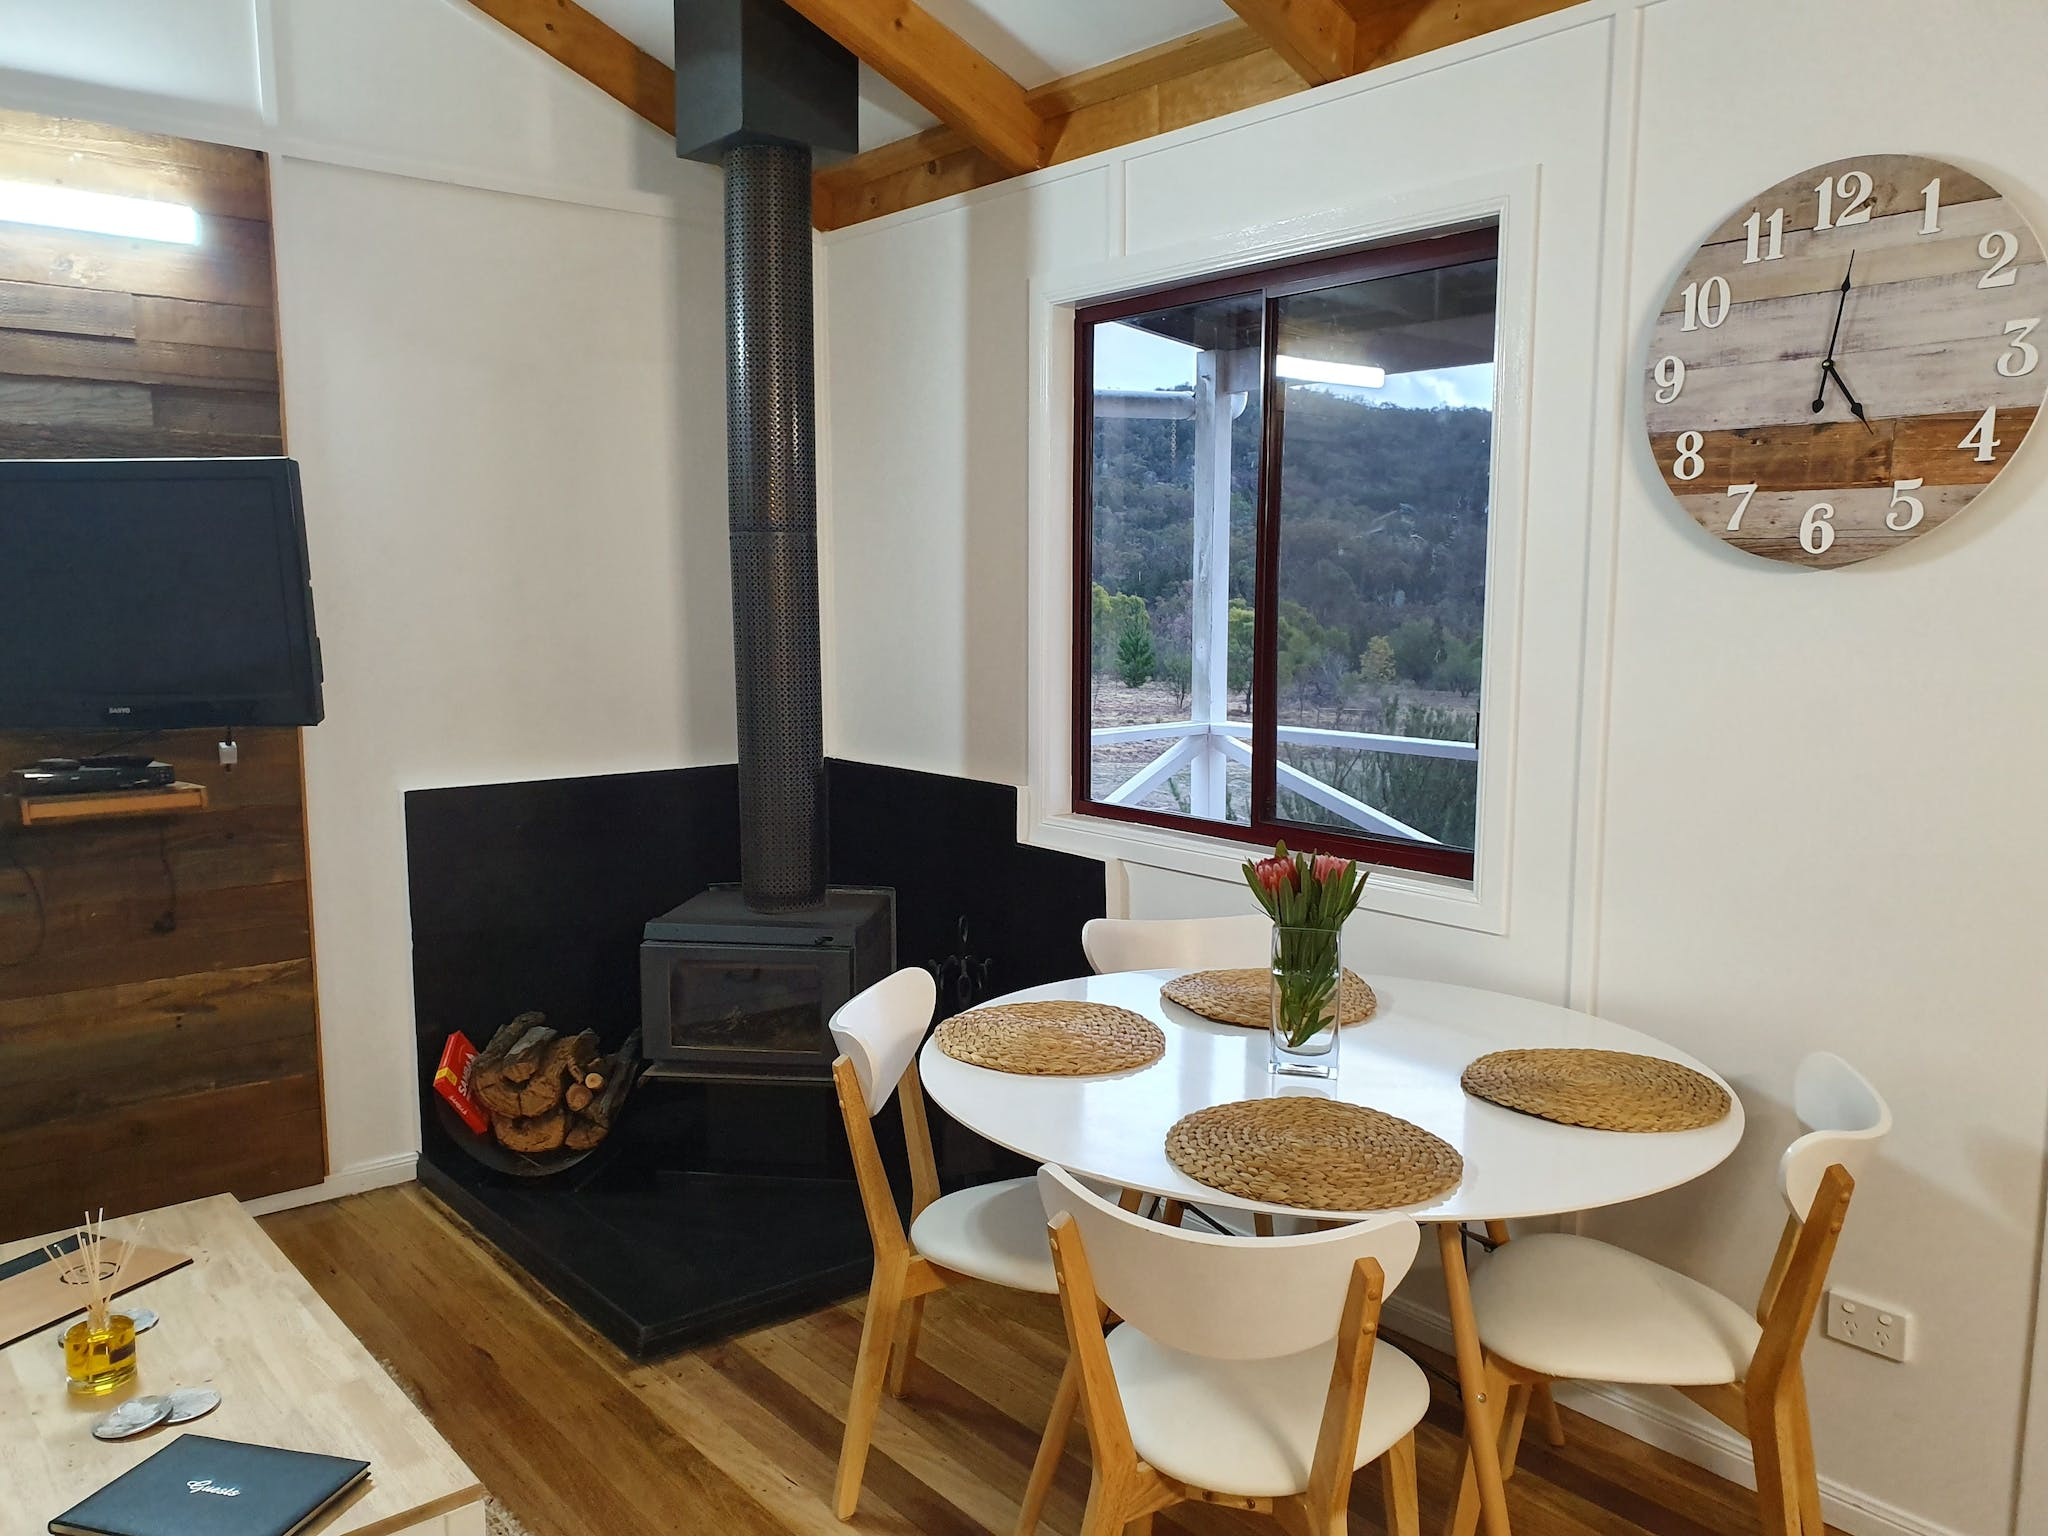 Fireplace and dining